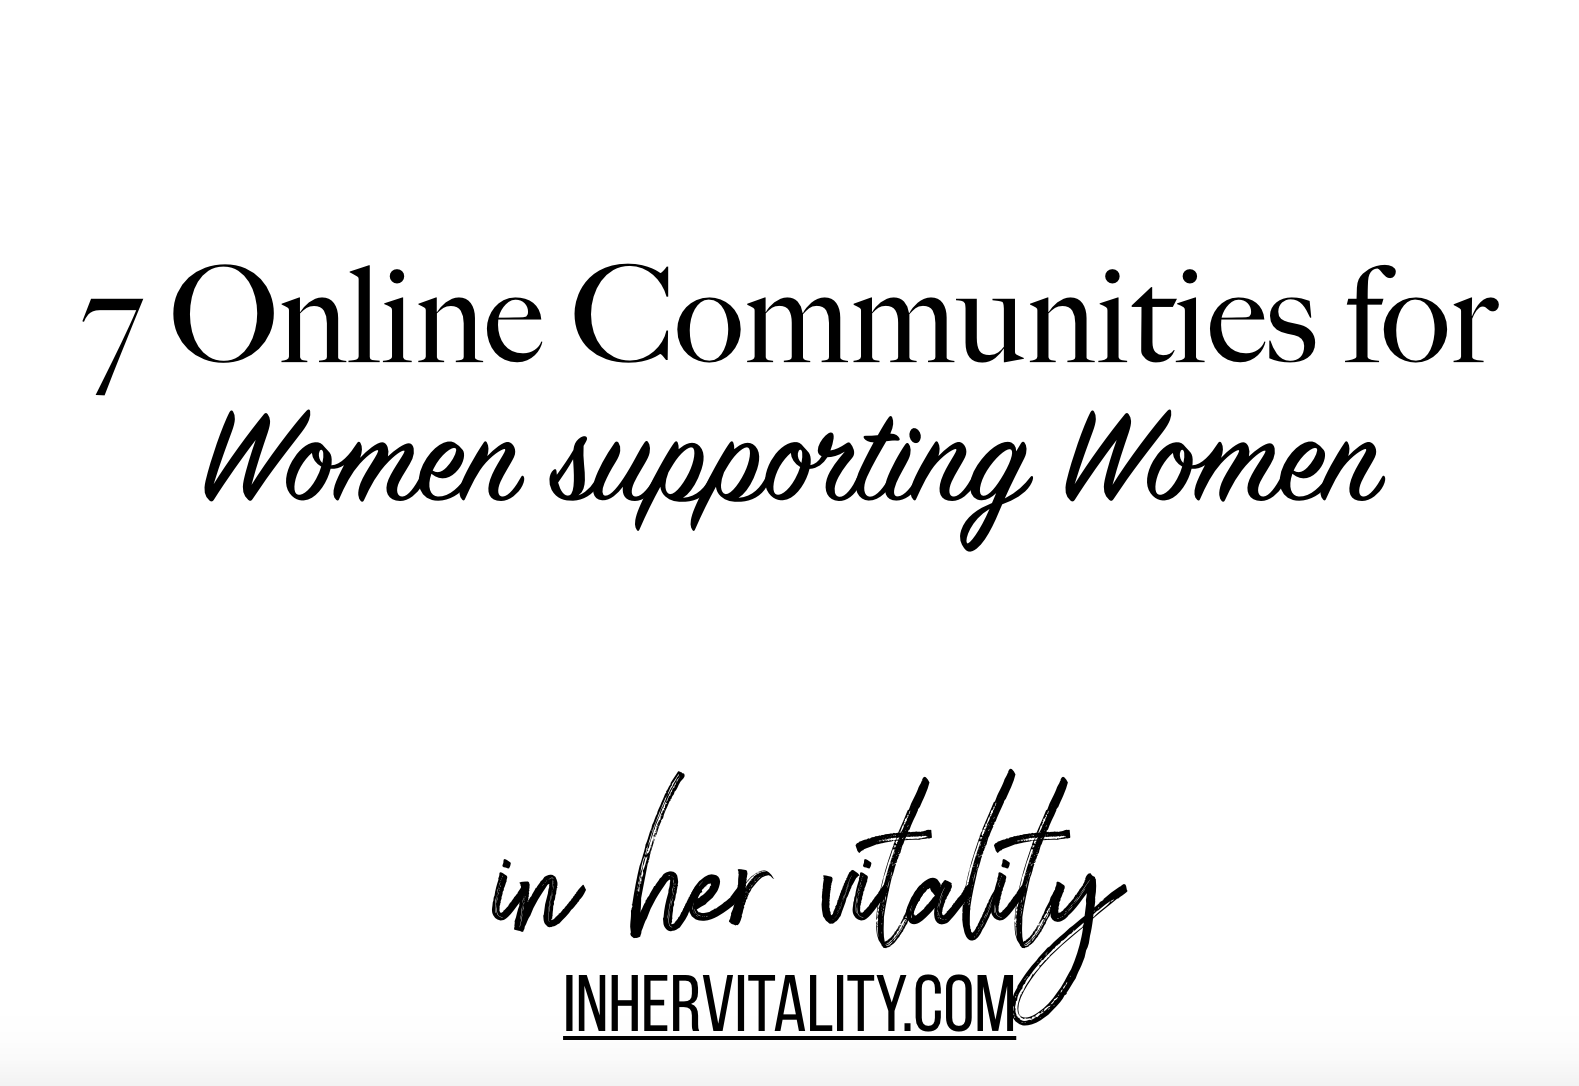 Feature image for online communities for women supporting women